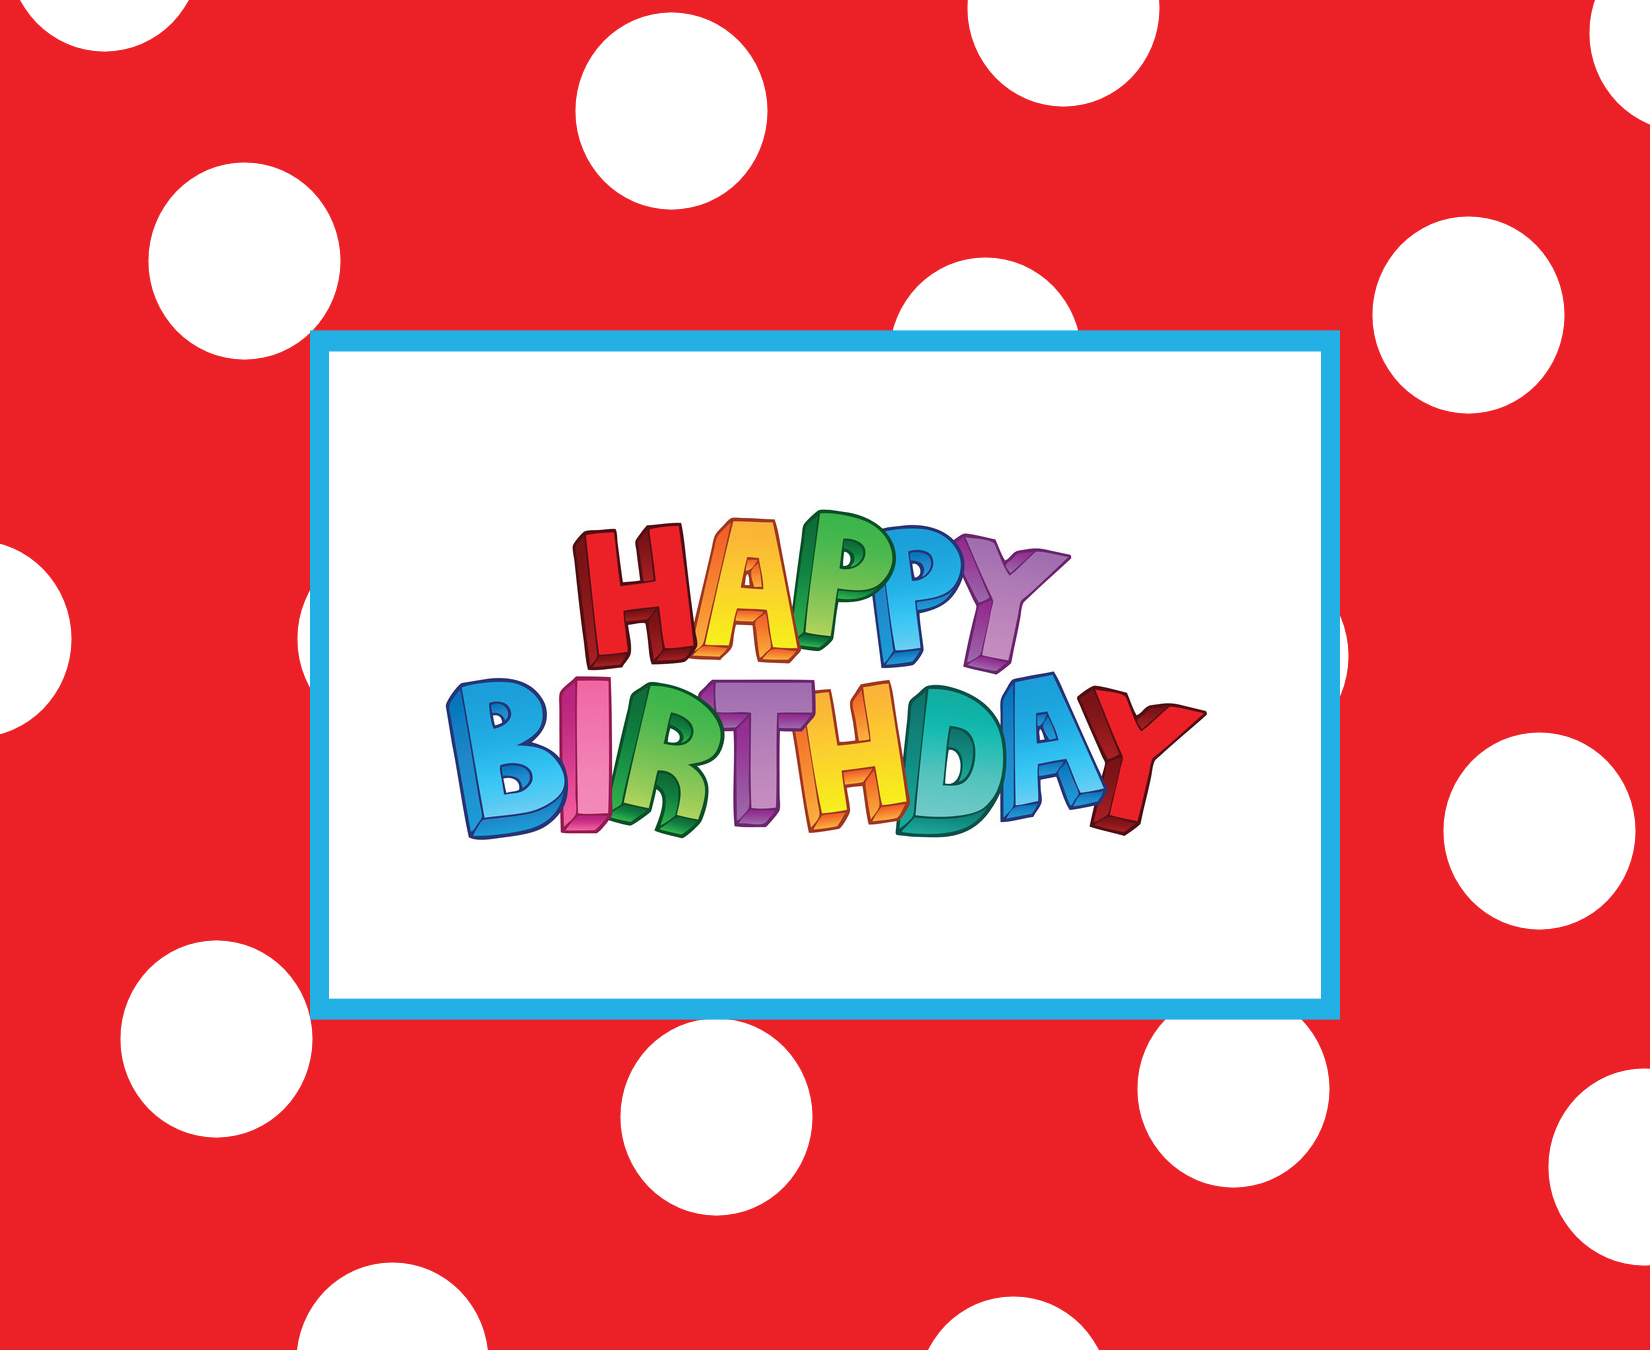 happy birthday card template free download – Birthday Card Printable Template